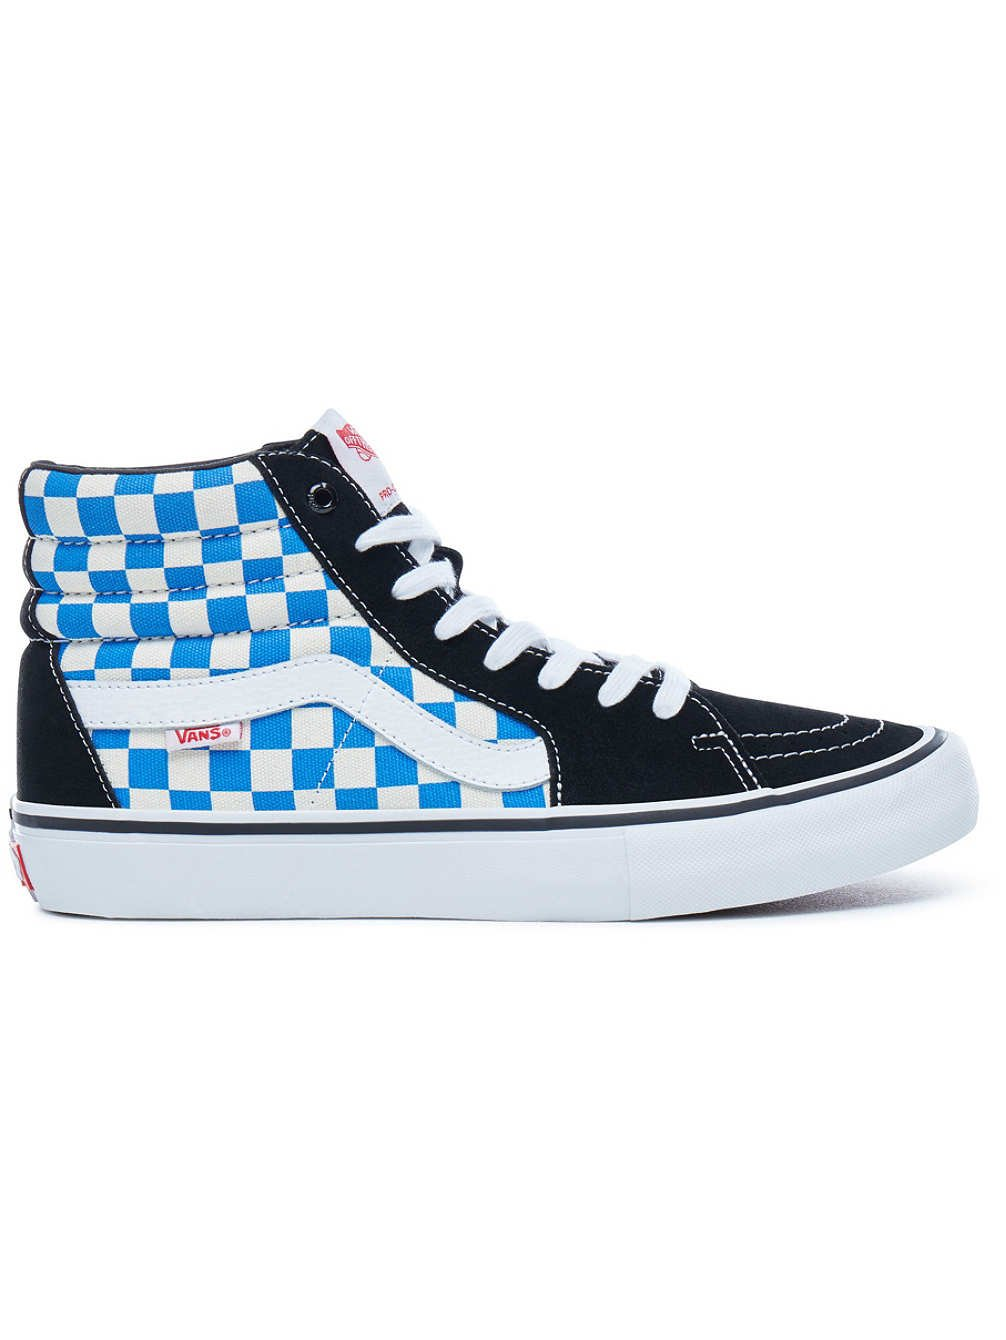 7903b26e6d33 Galleon - Vans Sk8-Hi Unisex Casual High-Top Skate Shoes ((Checkerboard)  Black Victoria Blue